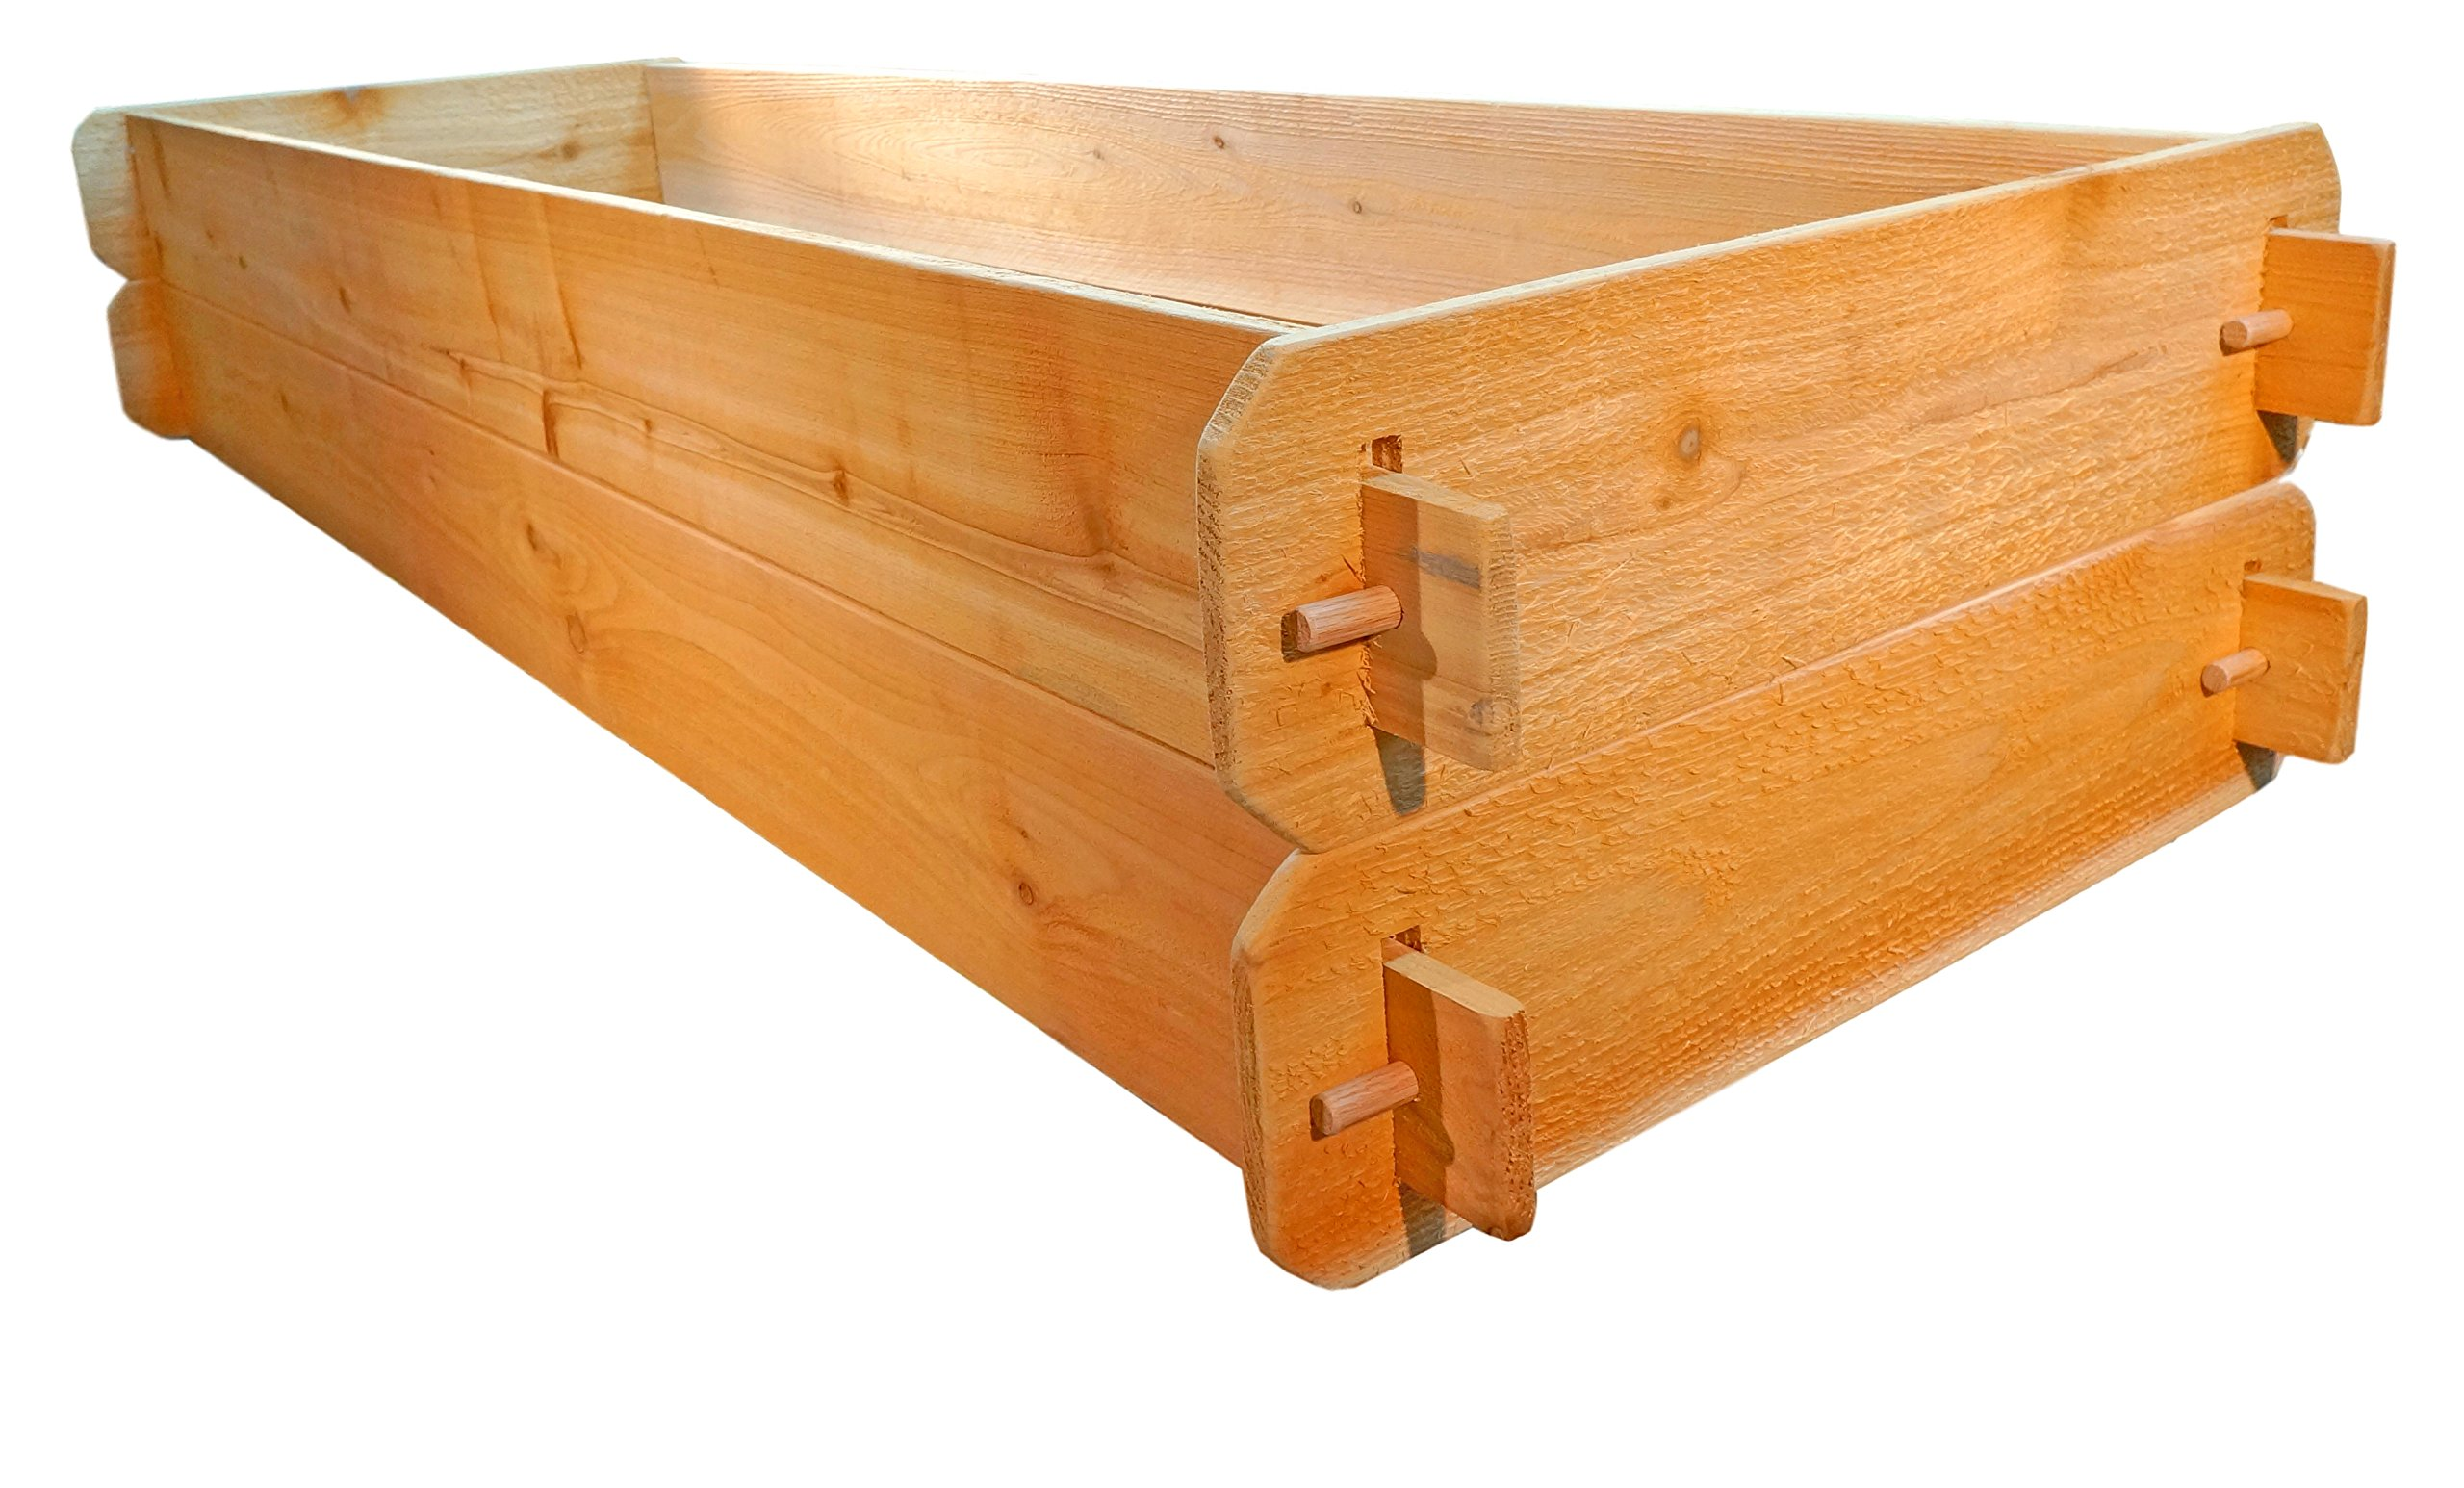 """Timberlane Gardens Raised Bed Kit Double Deep (Two) Western Red Cedar with Mortise and Tenon Joinery, 24"""" W x 72"""" L 2 <p>Raised garden bed kit dimensions: 2 feet wide x 6 feet long (6 inches deep) and 2 feet wide x 6 feet long (6 inches deep). Depth is 12 inches when stacked. 5/8"""" thick. Inner (planting) dimensions are a bit smaller due to the mortise & tenon joints. Raised Garden Bed Kit Proudly Made in Homer Glen, Illinois USA. Constructed of Select Western Red Cedar. Aromatic and Naturally Insect & Rot Resistant. Handcrafted Mortise & Tenon Joinery. The Strongest Corner Joints Available. Easy to Assemble in Seconds, No Tools Required. Perfect for a Children's Garden. Splinter Free. 100% Natural and Chemical Free. Safe for Vegetables and Best for Organic Gardening.</p>"""